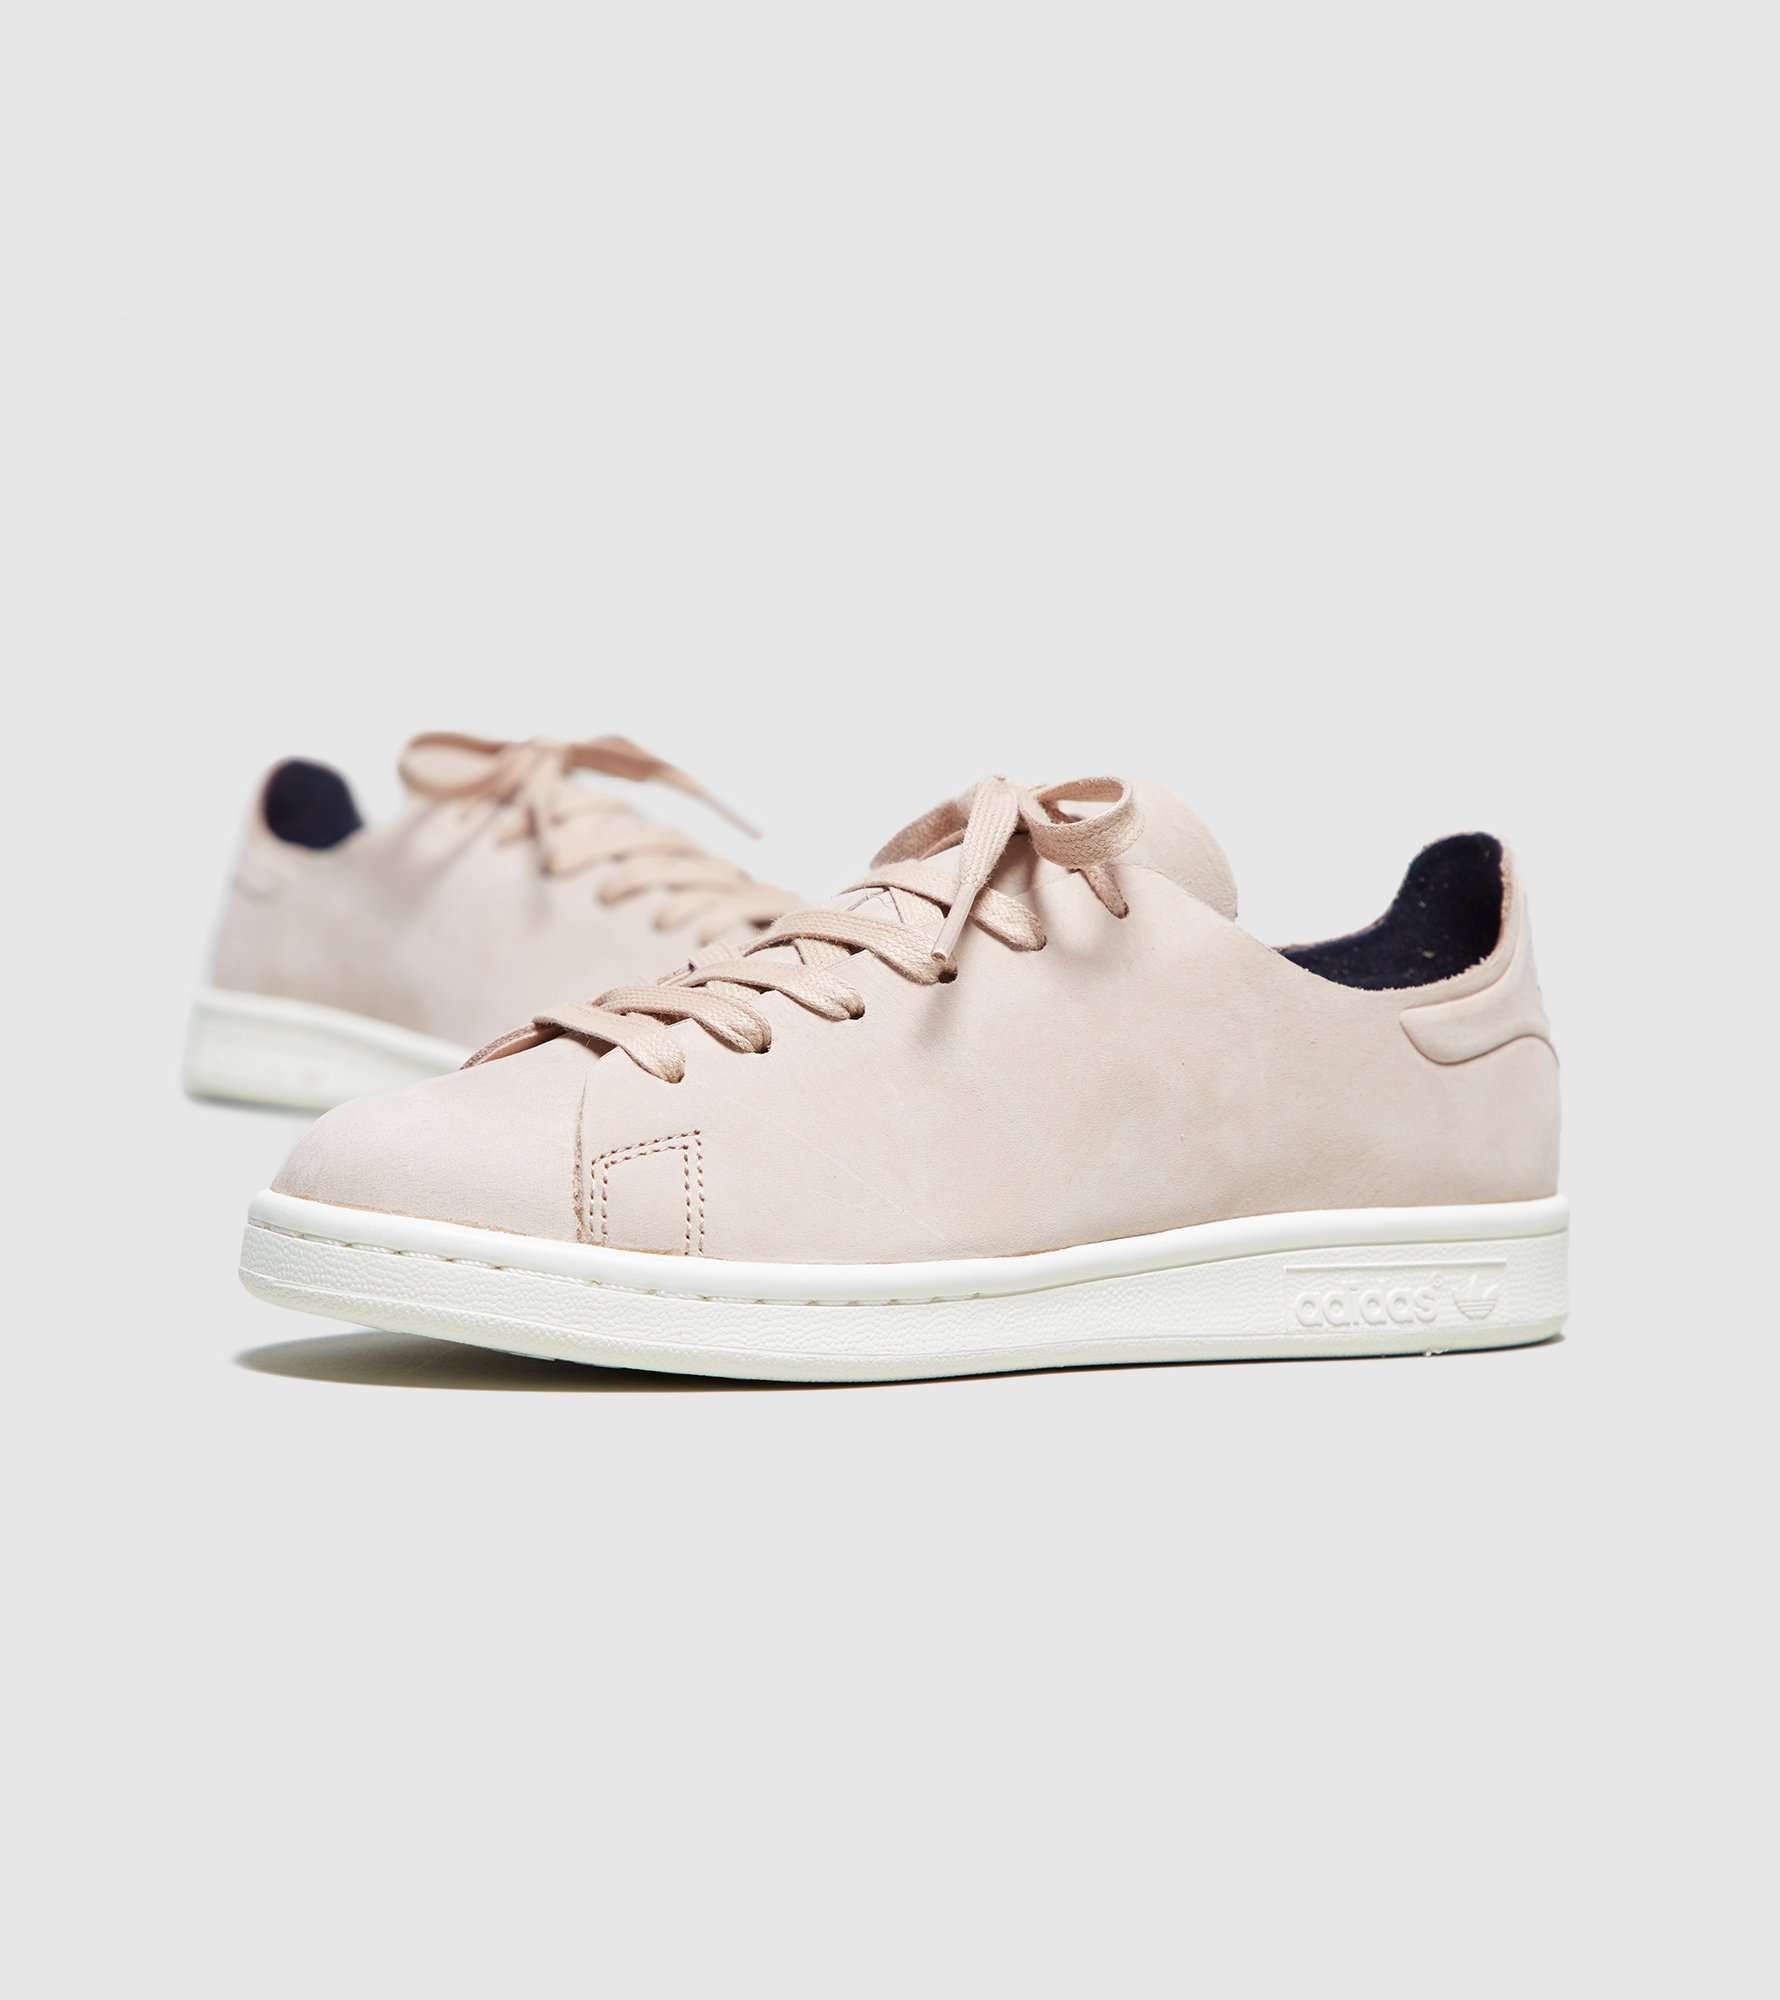 site stan smith